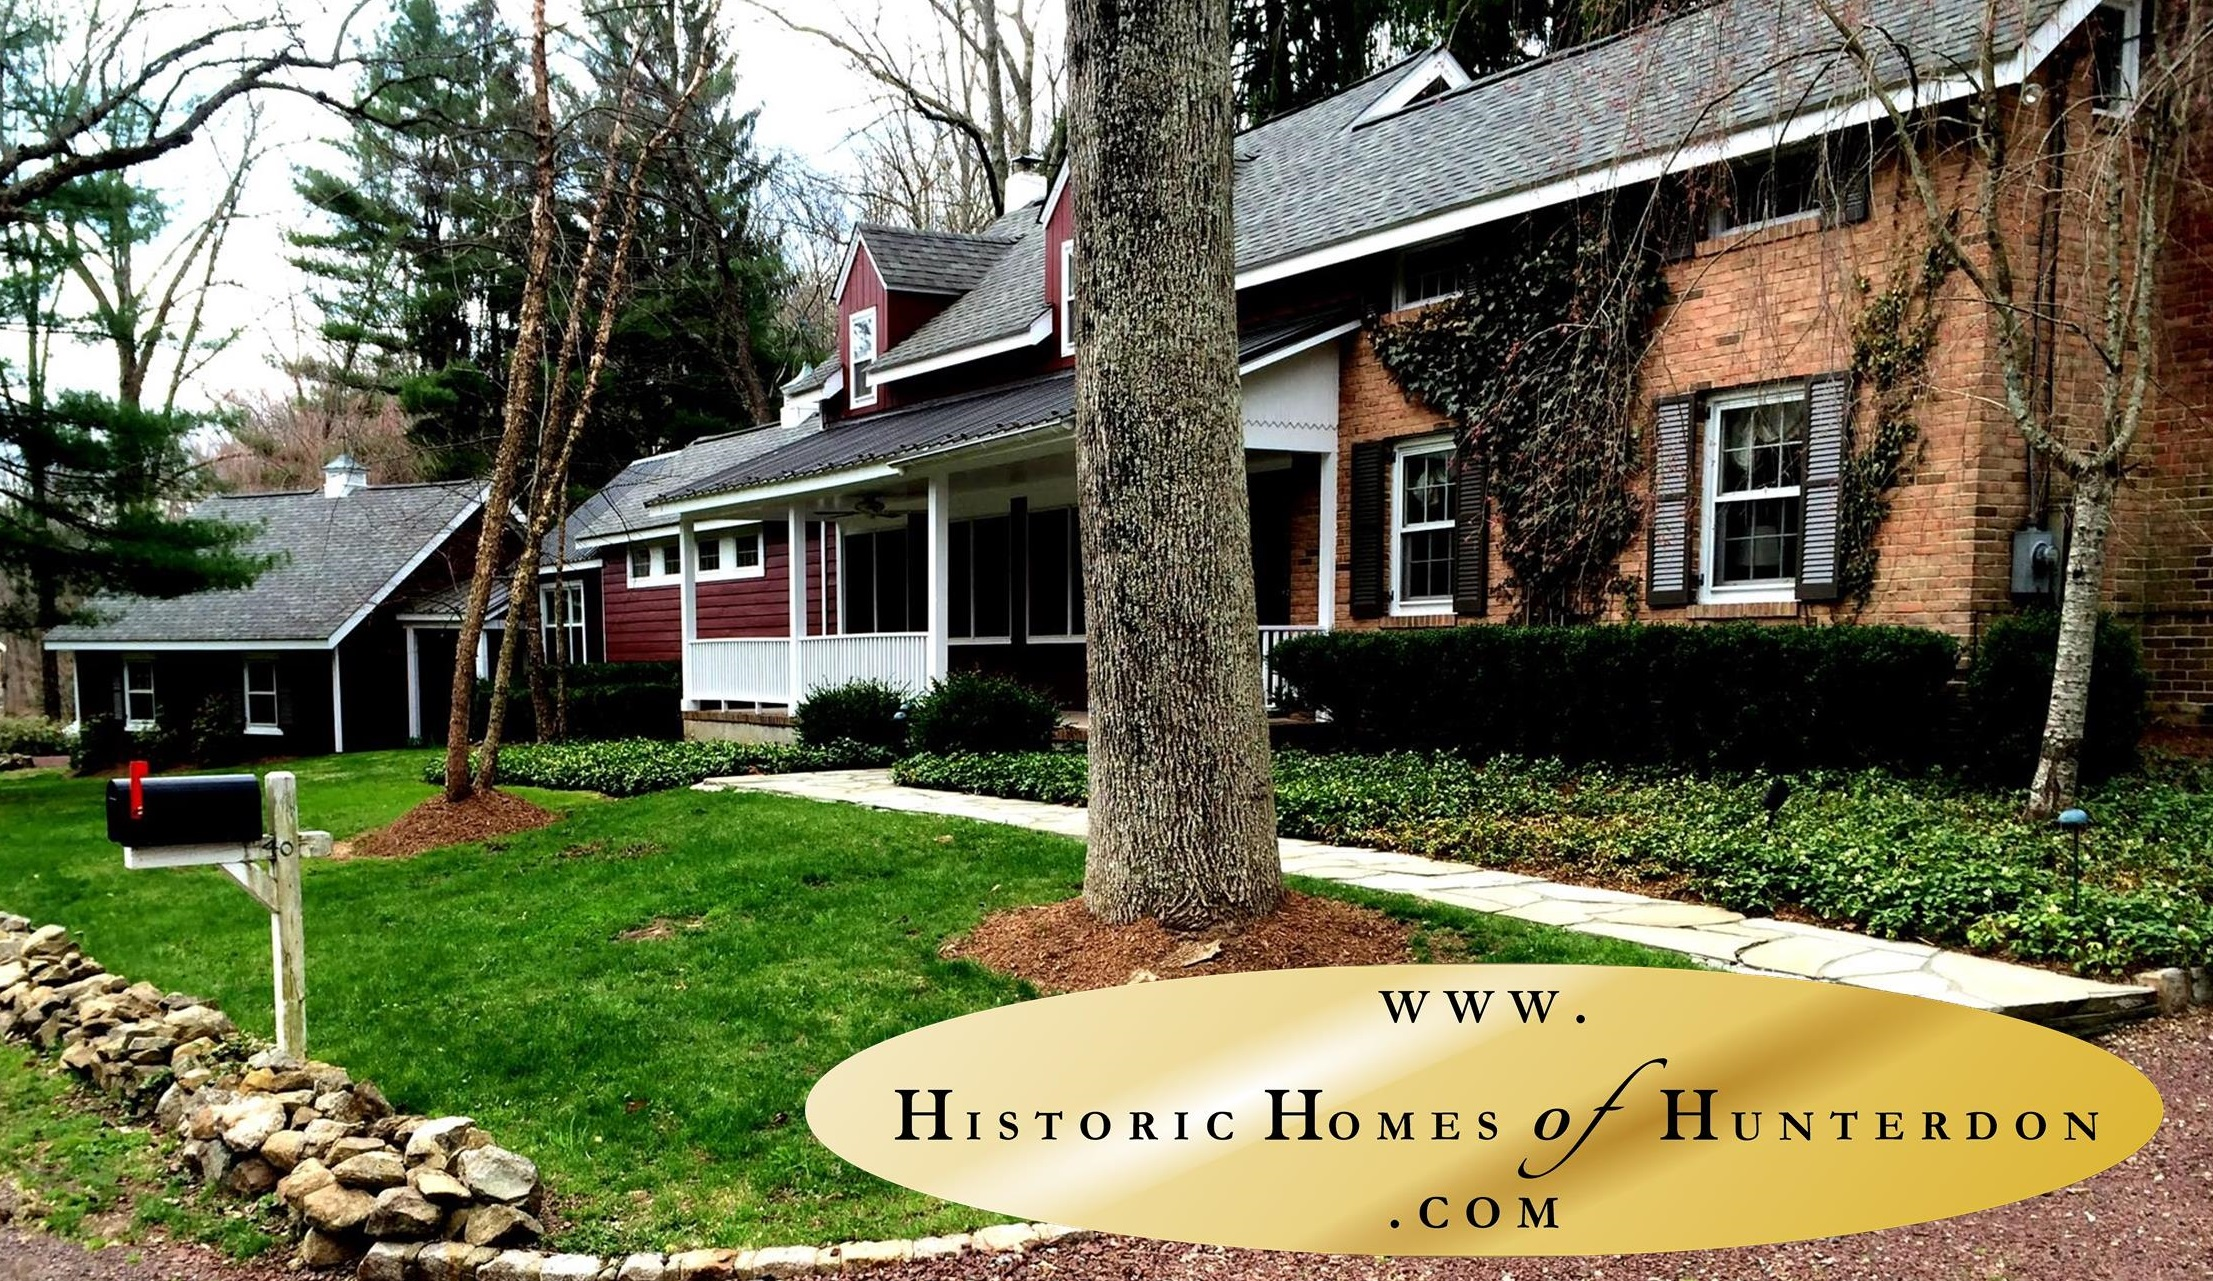 Historic Homes Of Hunterdon | Steve Walny | WEIDEL Realtors